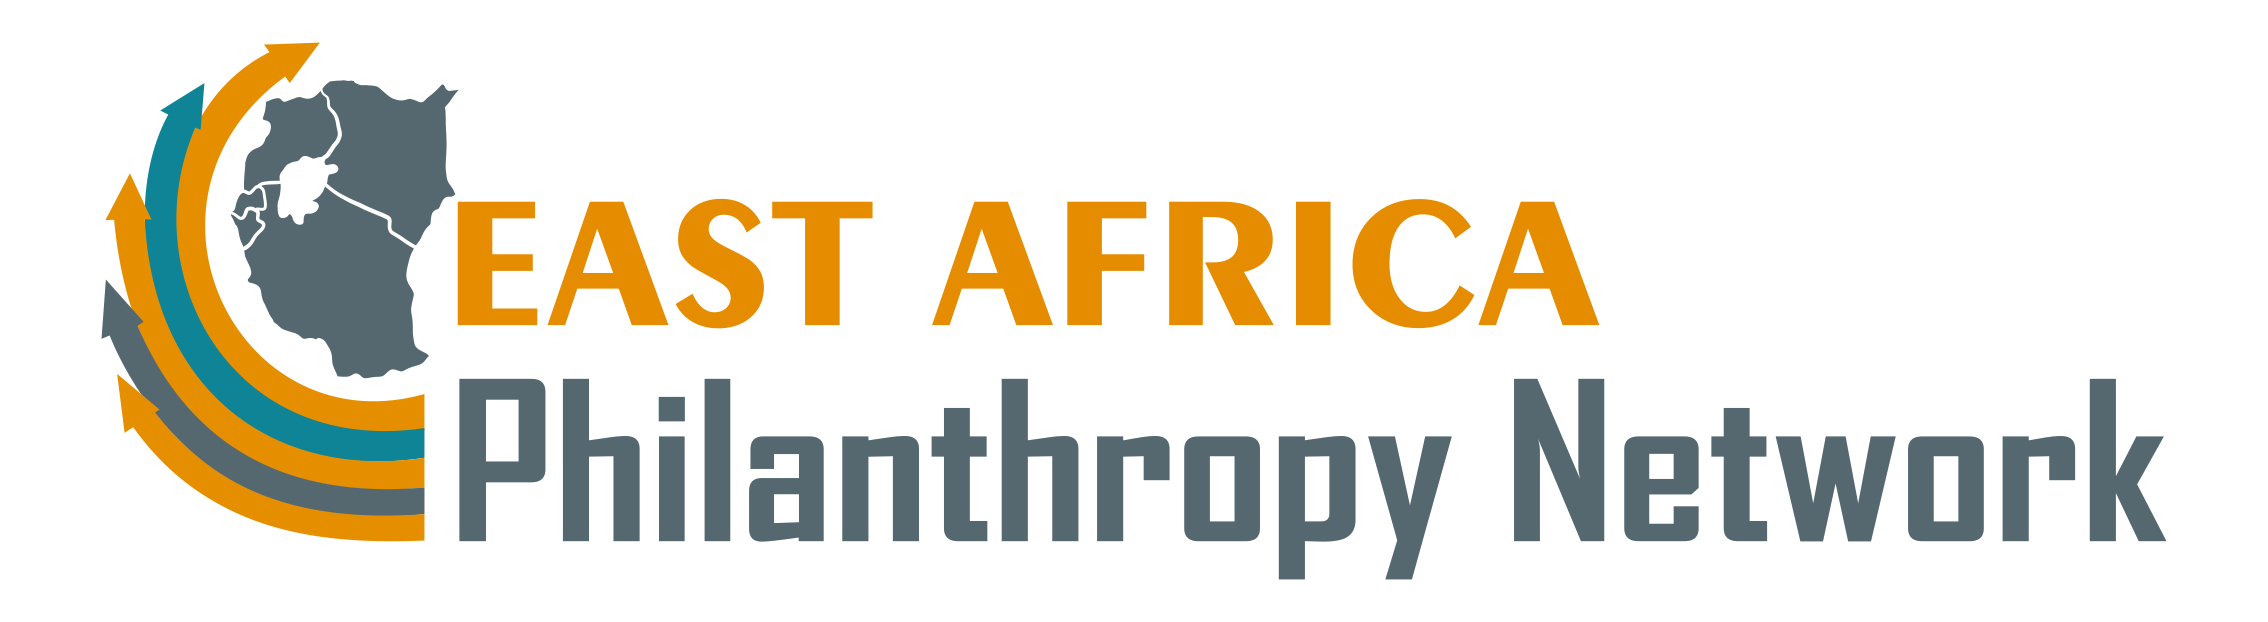 EAST AFRICAN PHILANTROPY NETWOK.jpg